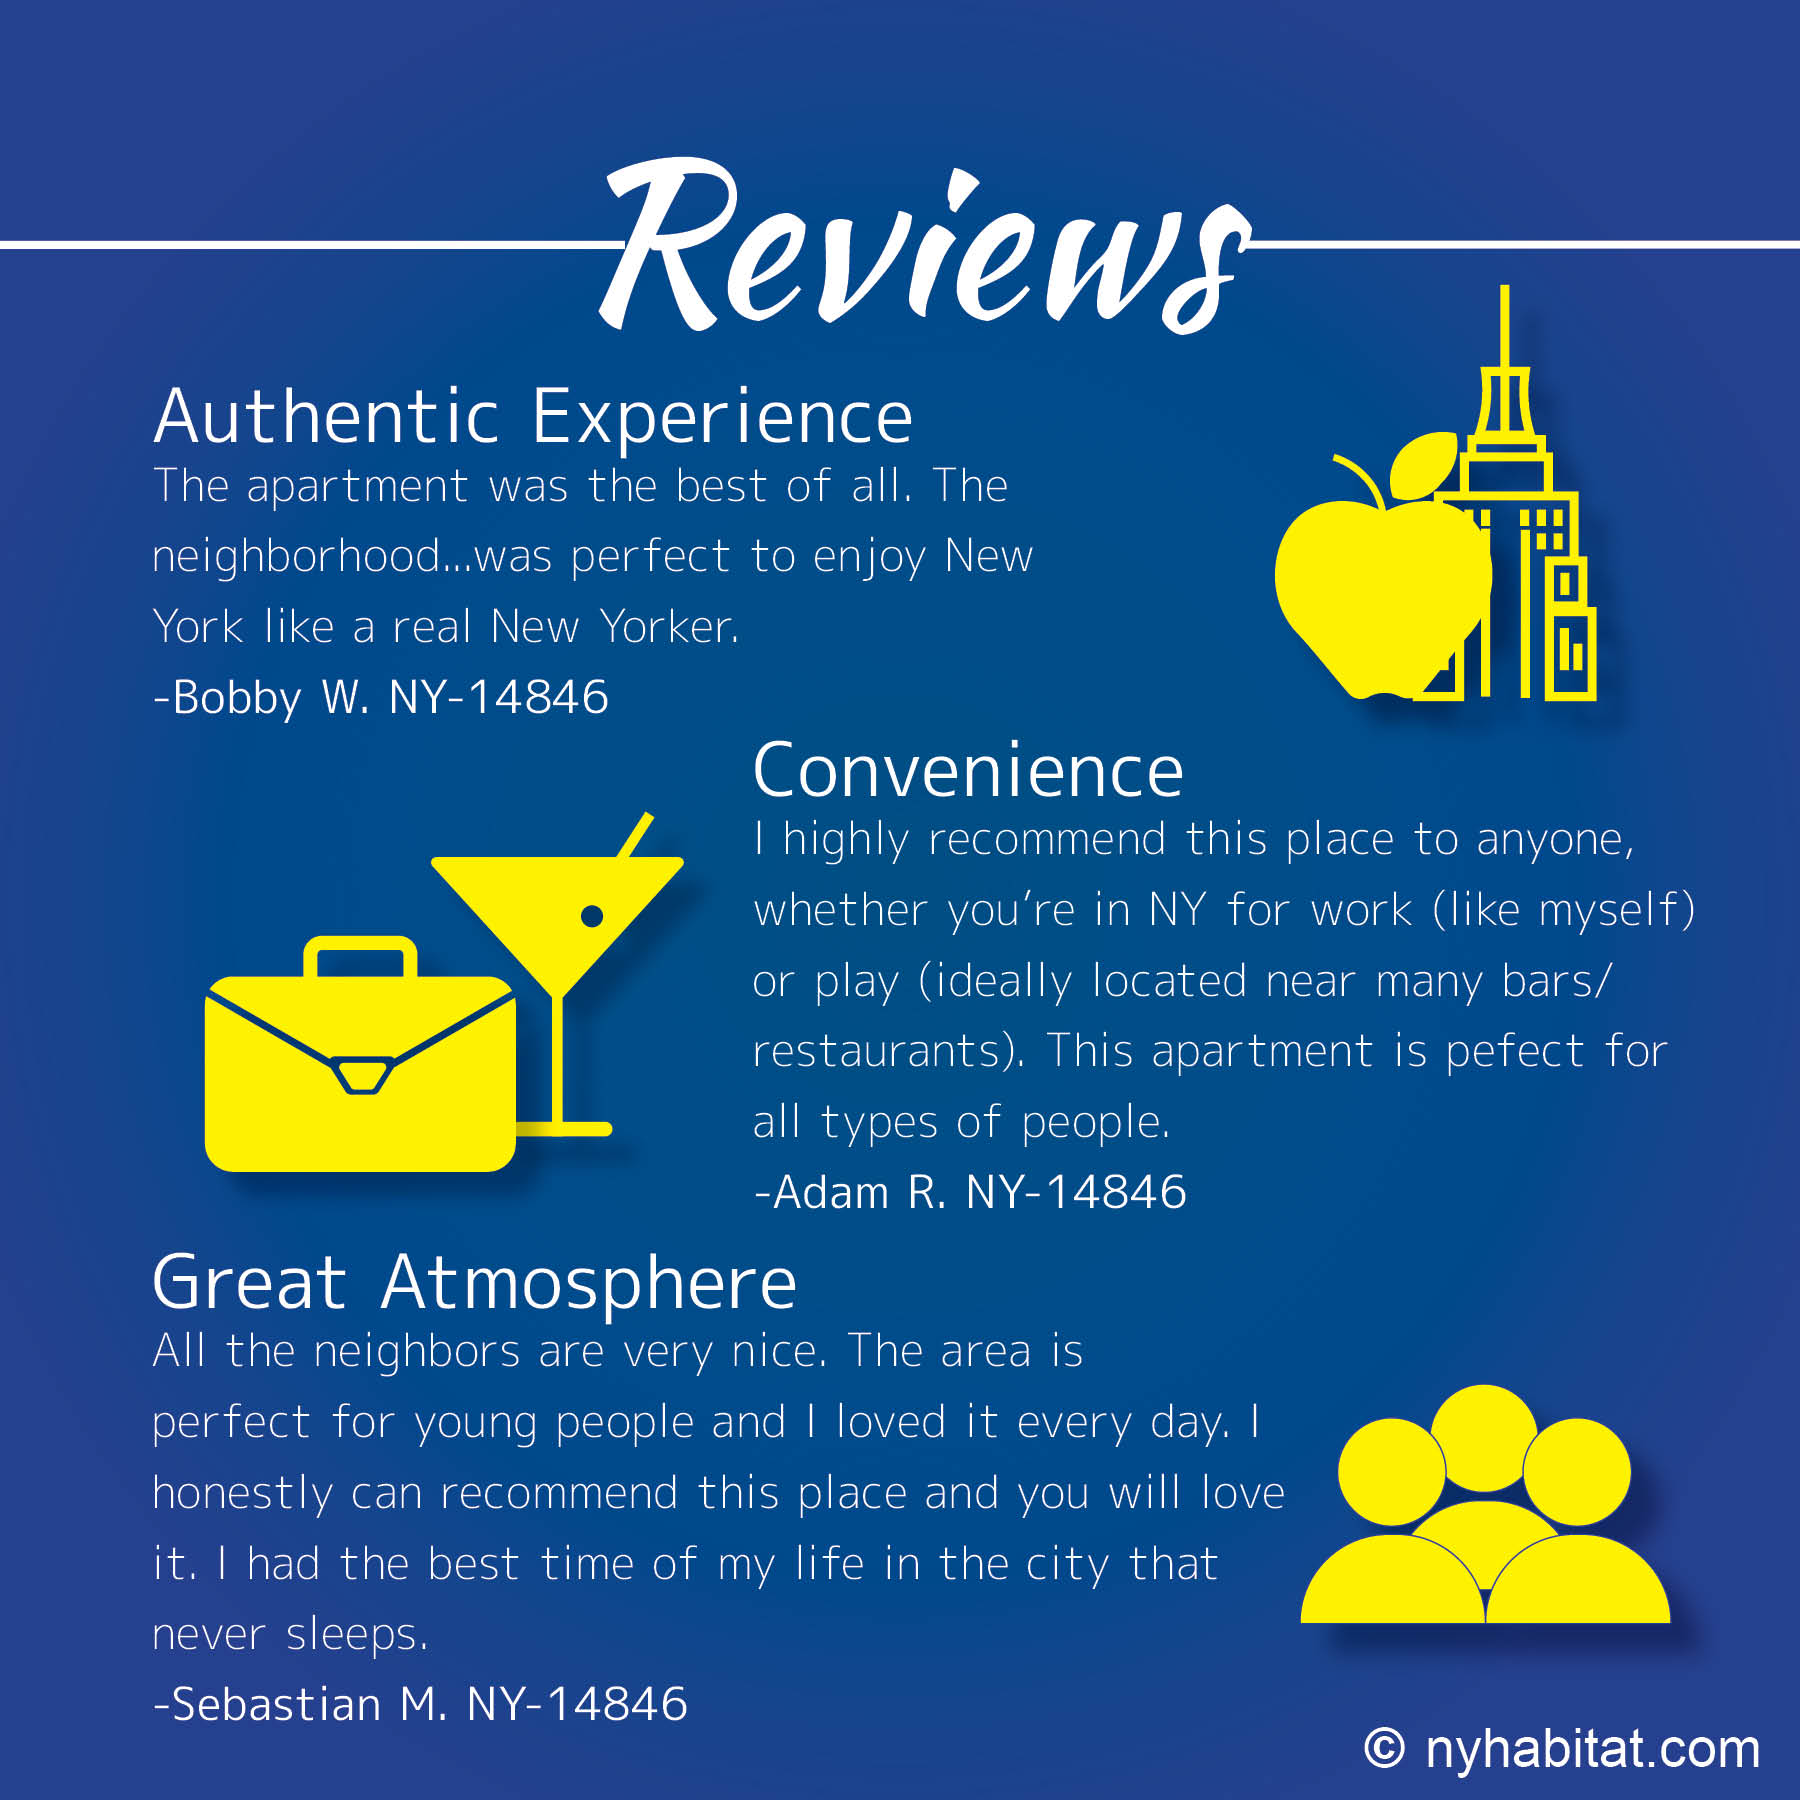 Infographic of client reviews of the East Village